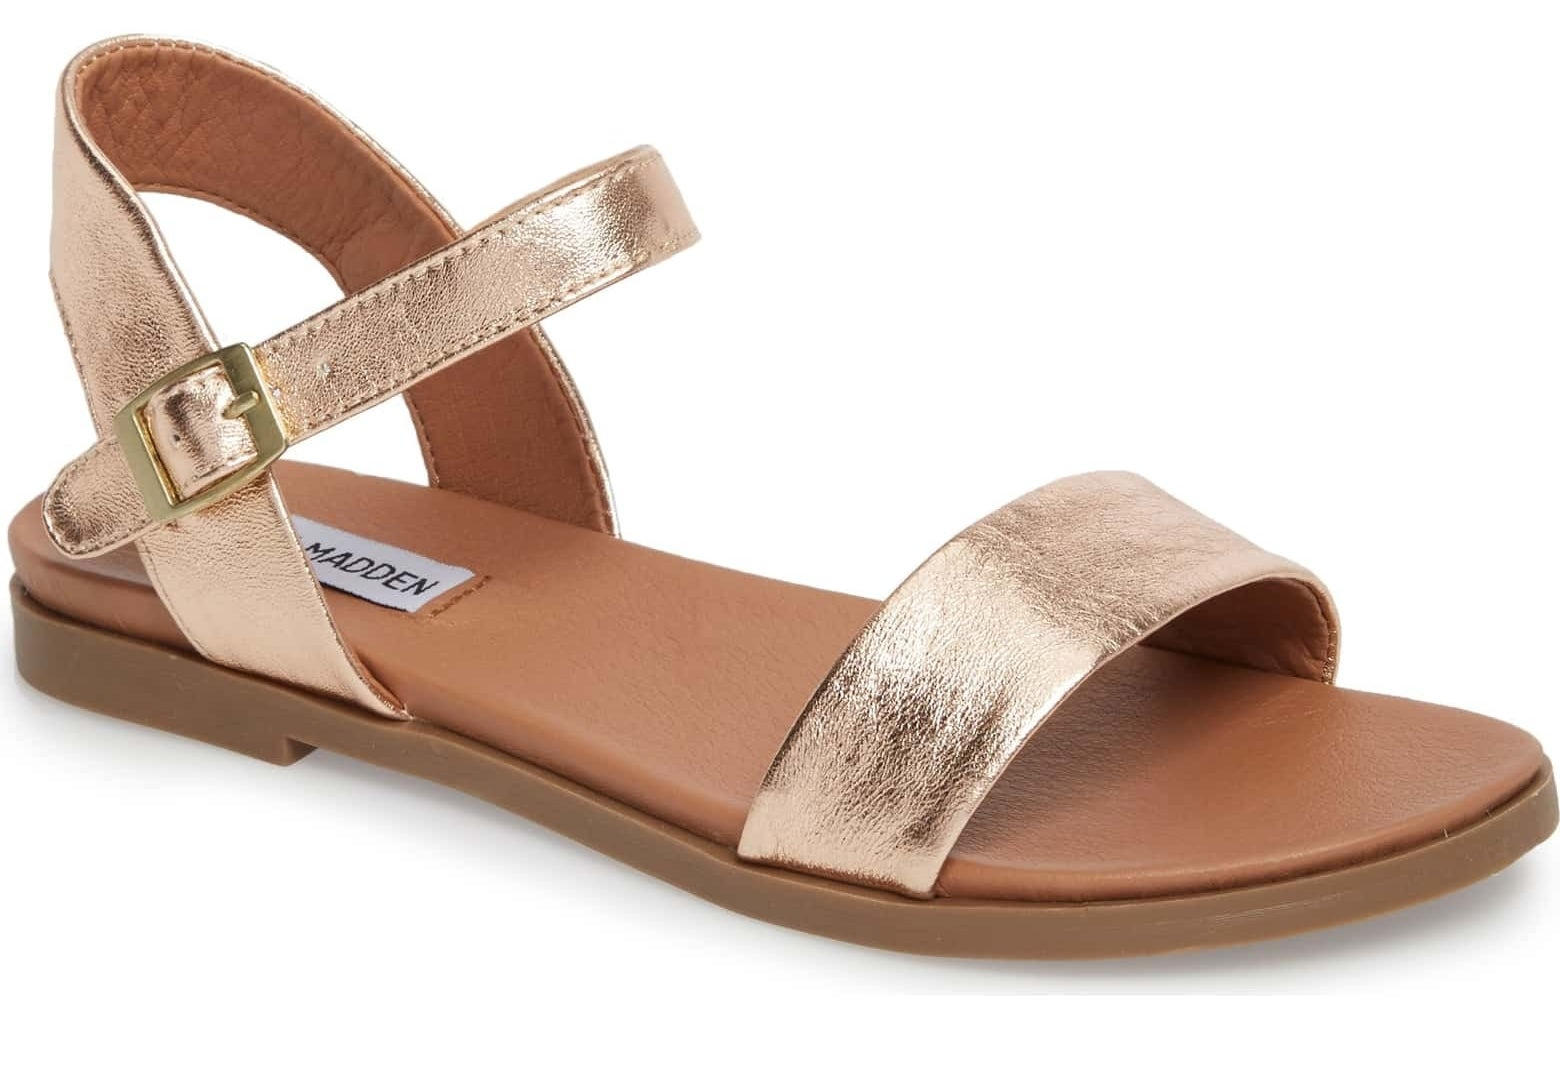 """Promising review: """"Super comfortable and cute sandal at a great price! The footbed is soft and comfortable, so you can wear this all day without your feet hurting. Sandal can be dressed up or down, goes with plenty of different outfits. The strap in the front at first seemed a bit loose, but as long as you tighten the back you'll be fine. Fits me true to my size 10. Highly recommend!"""" —JeanellyBeansPrice: $59.95 (available in sizes 5–11 and in five styles)"""